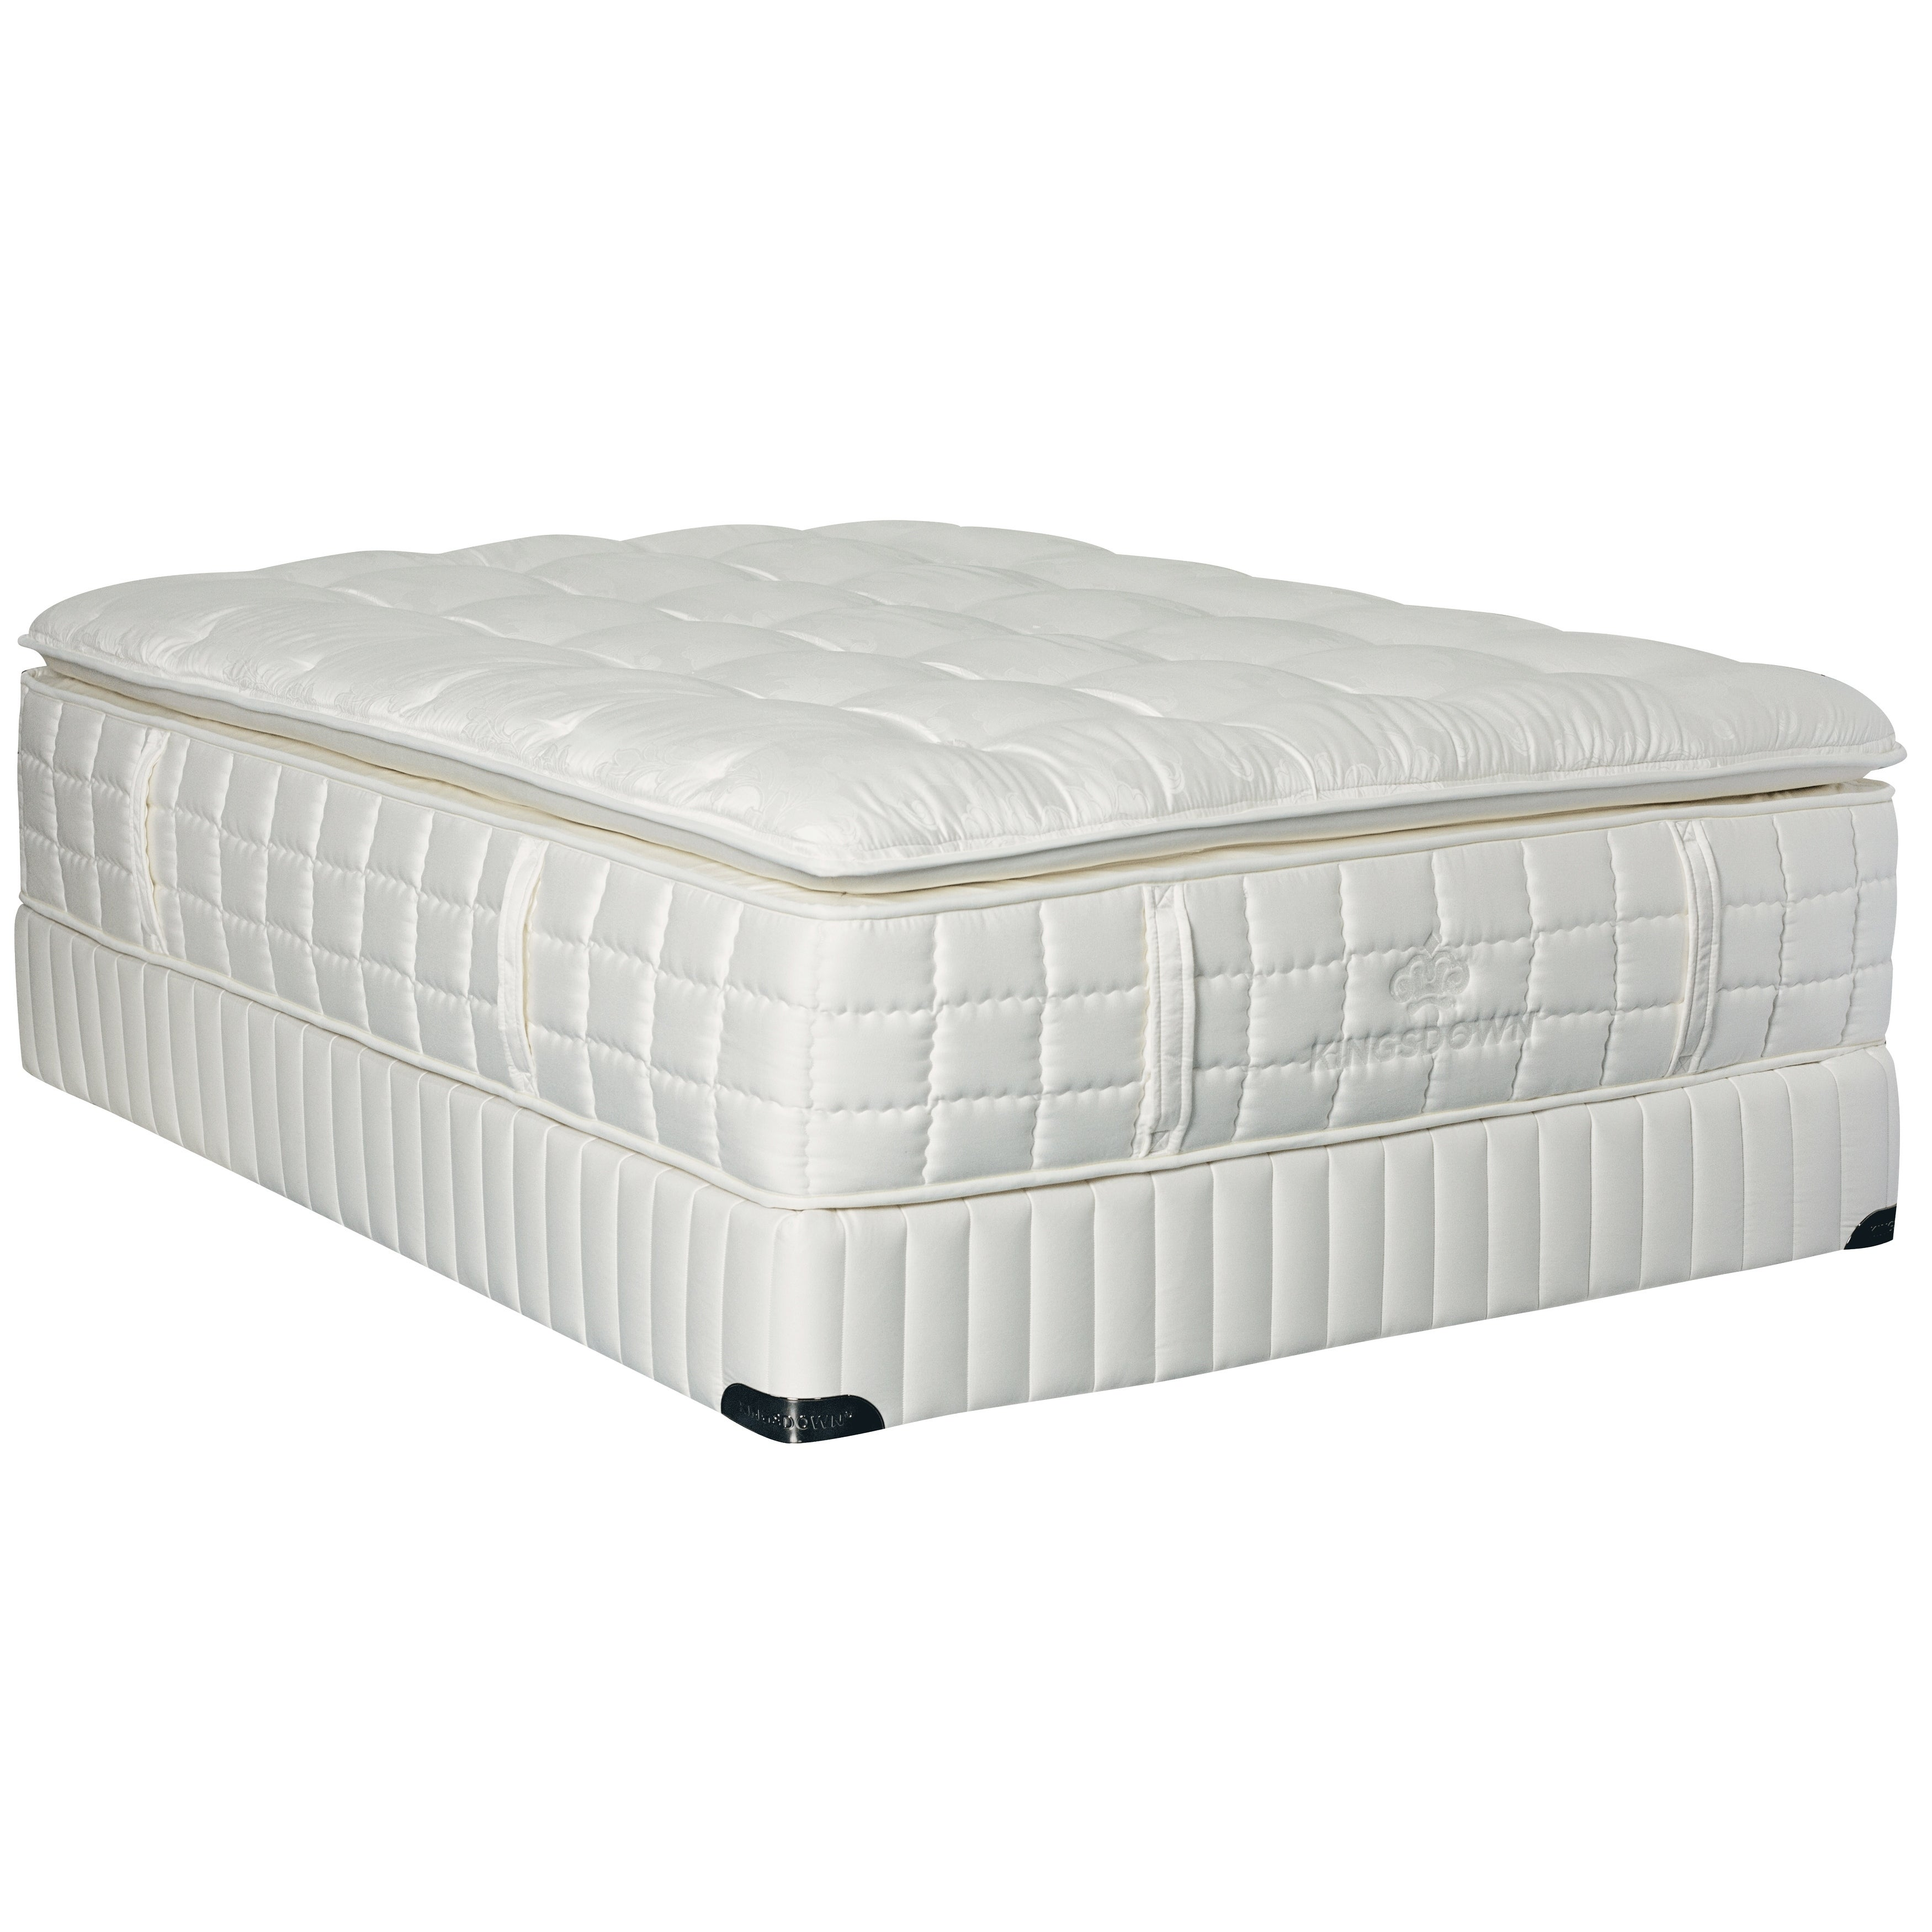 twin top idf euro pillow products waterman mattress technology with size cool gel